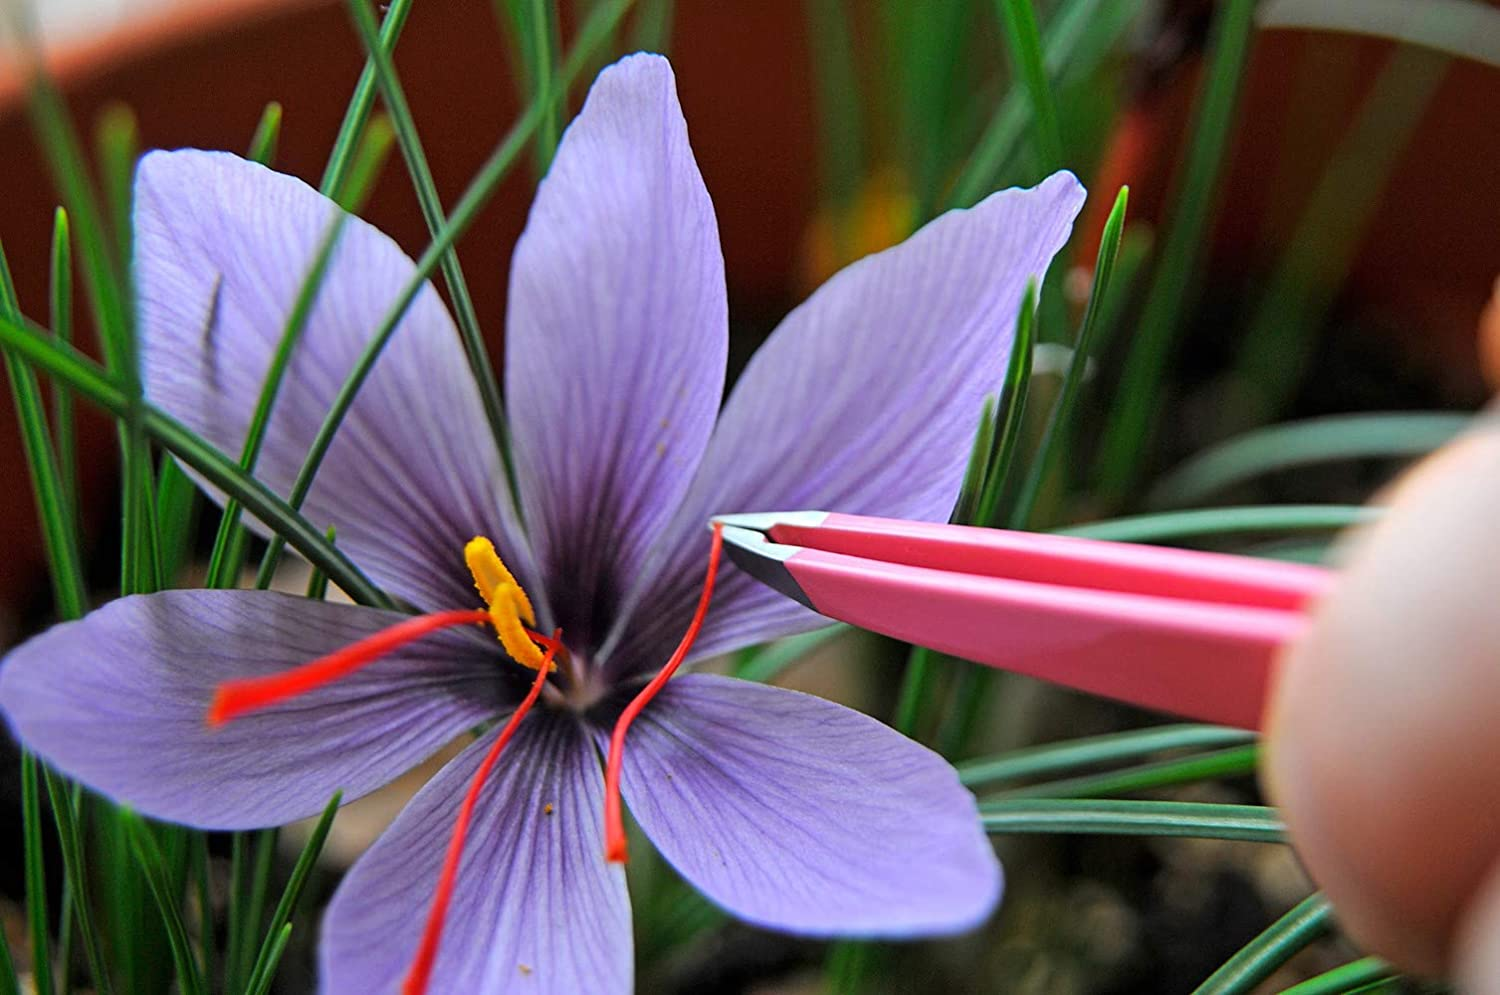 8 Ways To Use Saffron In Your Beauty Regime